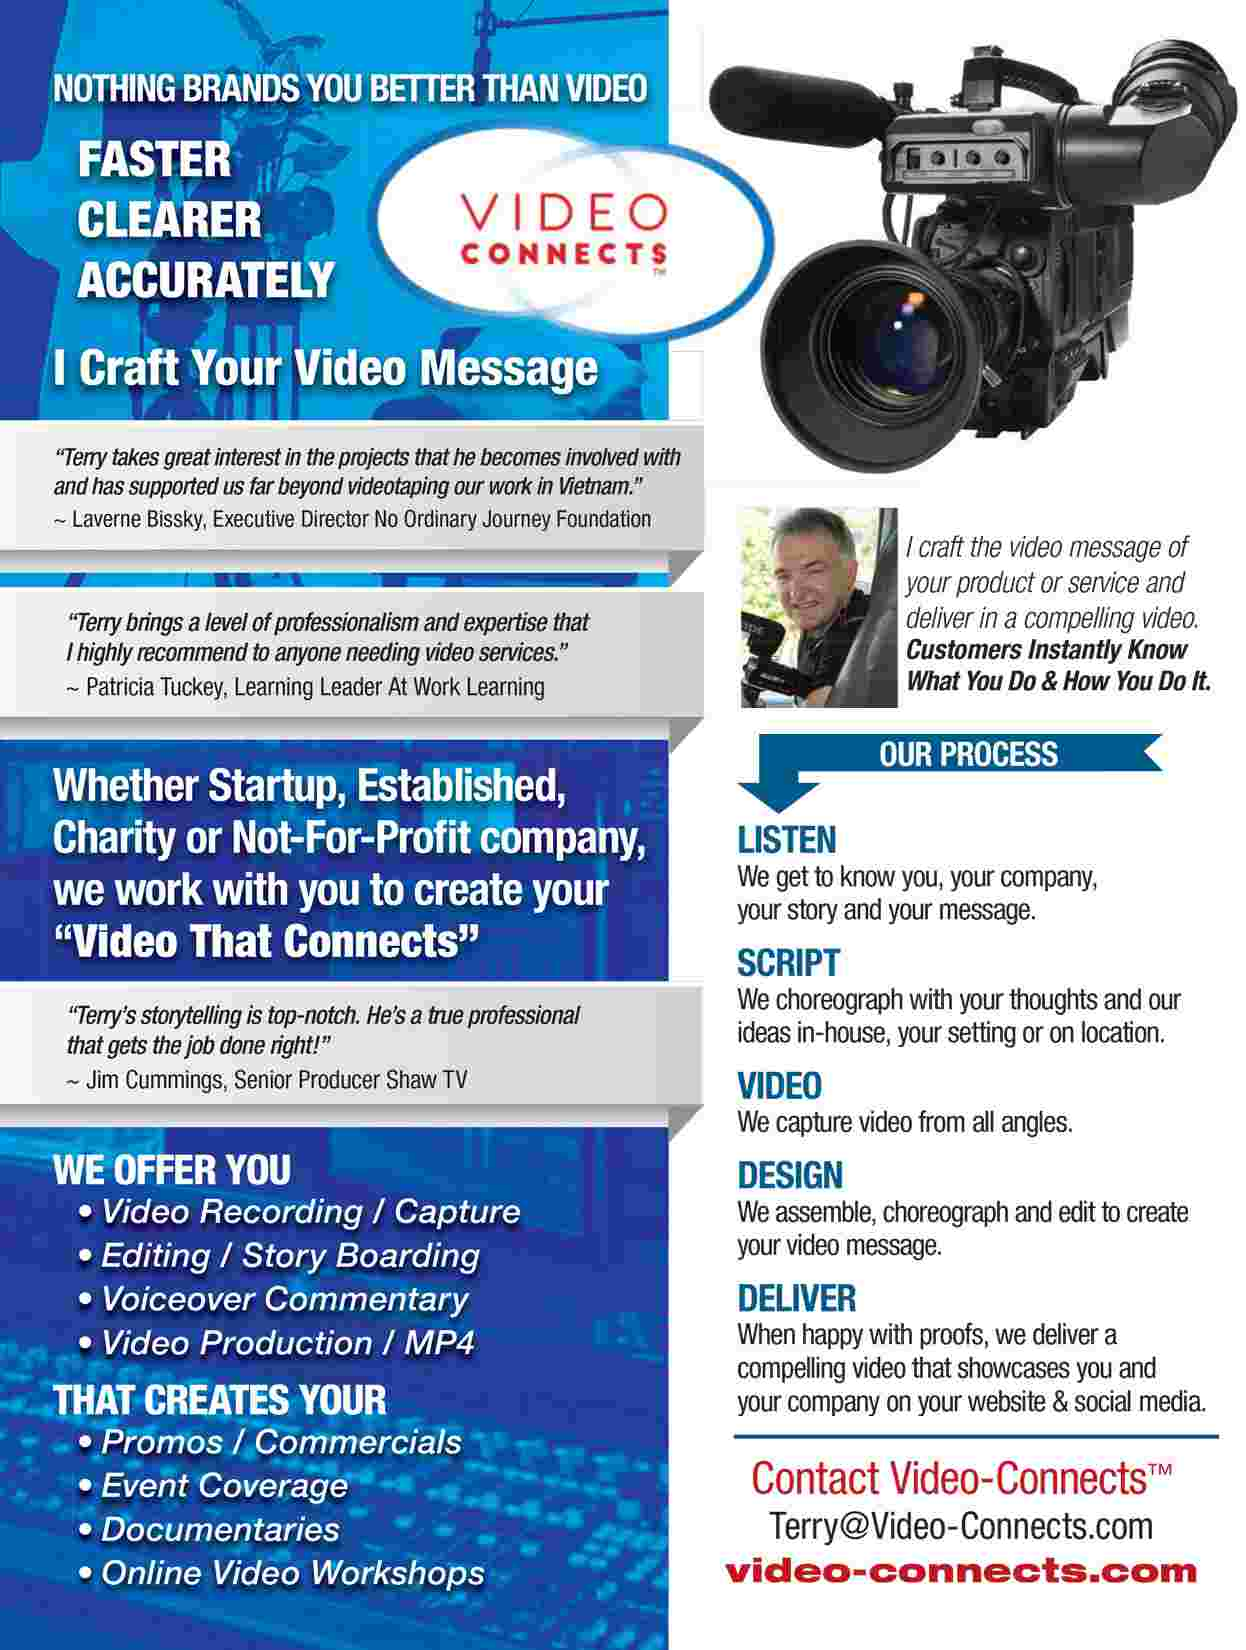 Video-Connects Marketing Brochure One Pager